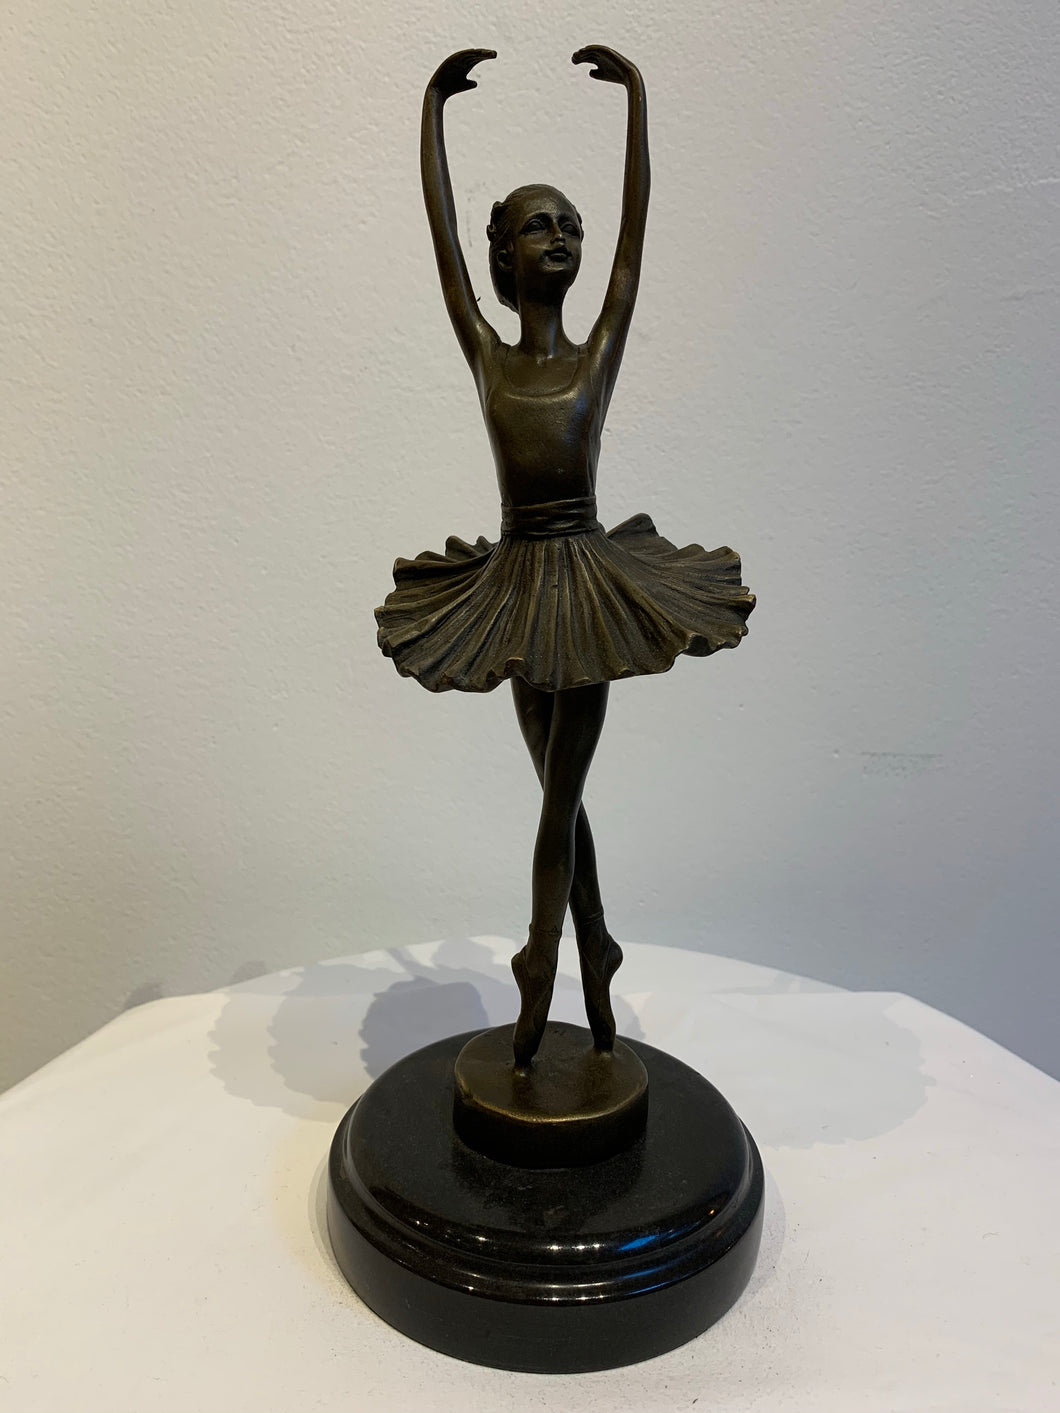 Danseuse en bronze